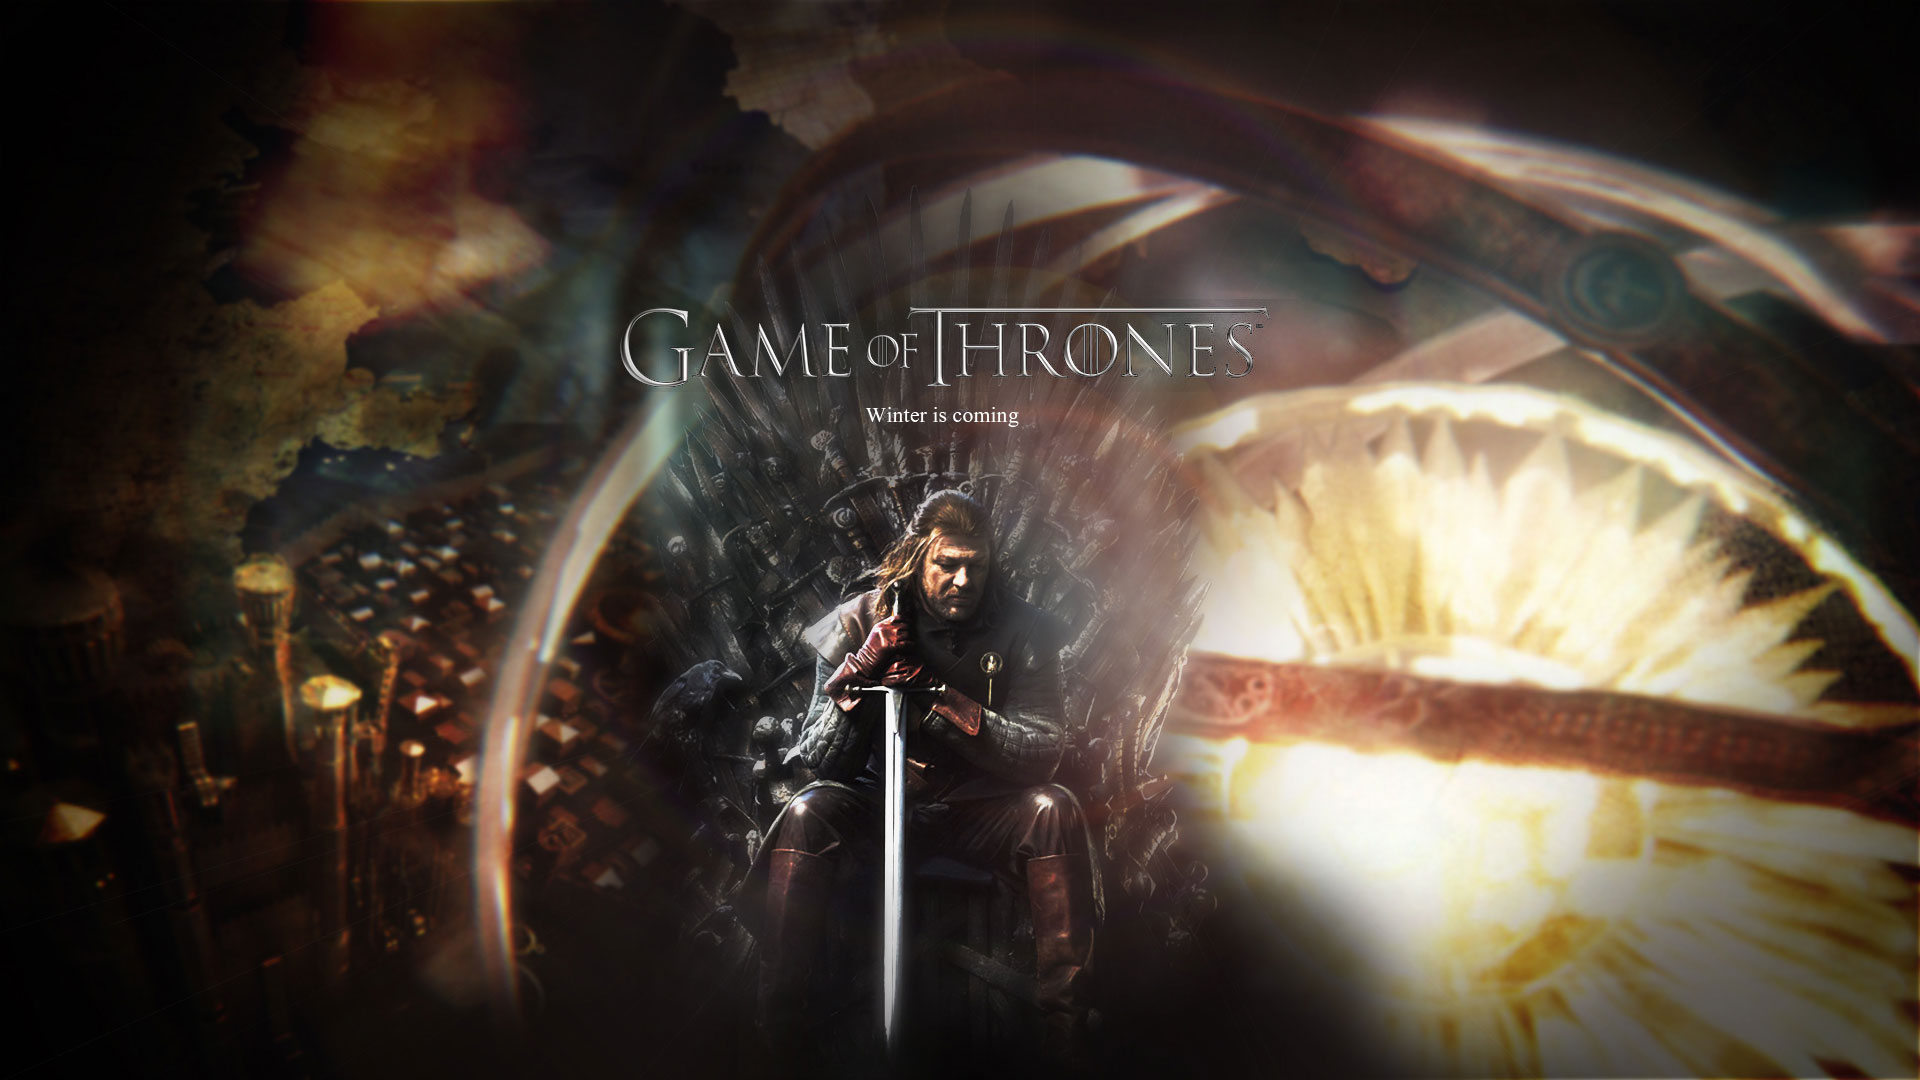 Game Of Thrones Images Winter Is Coming HD Wallpaper And Background Photos